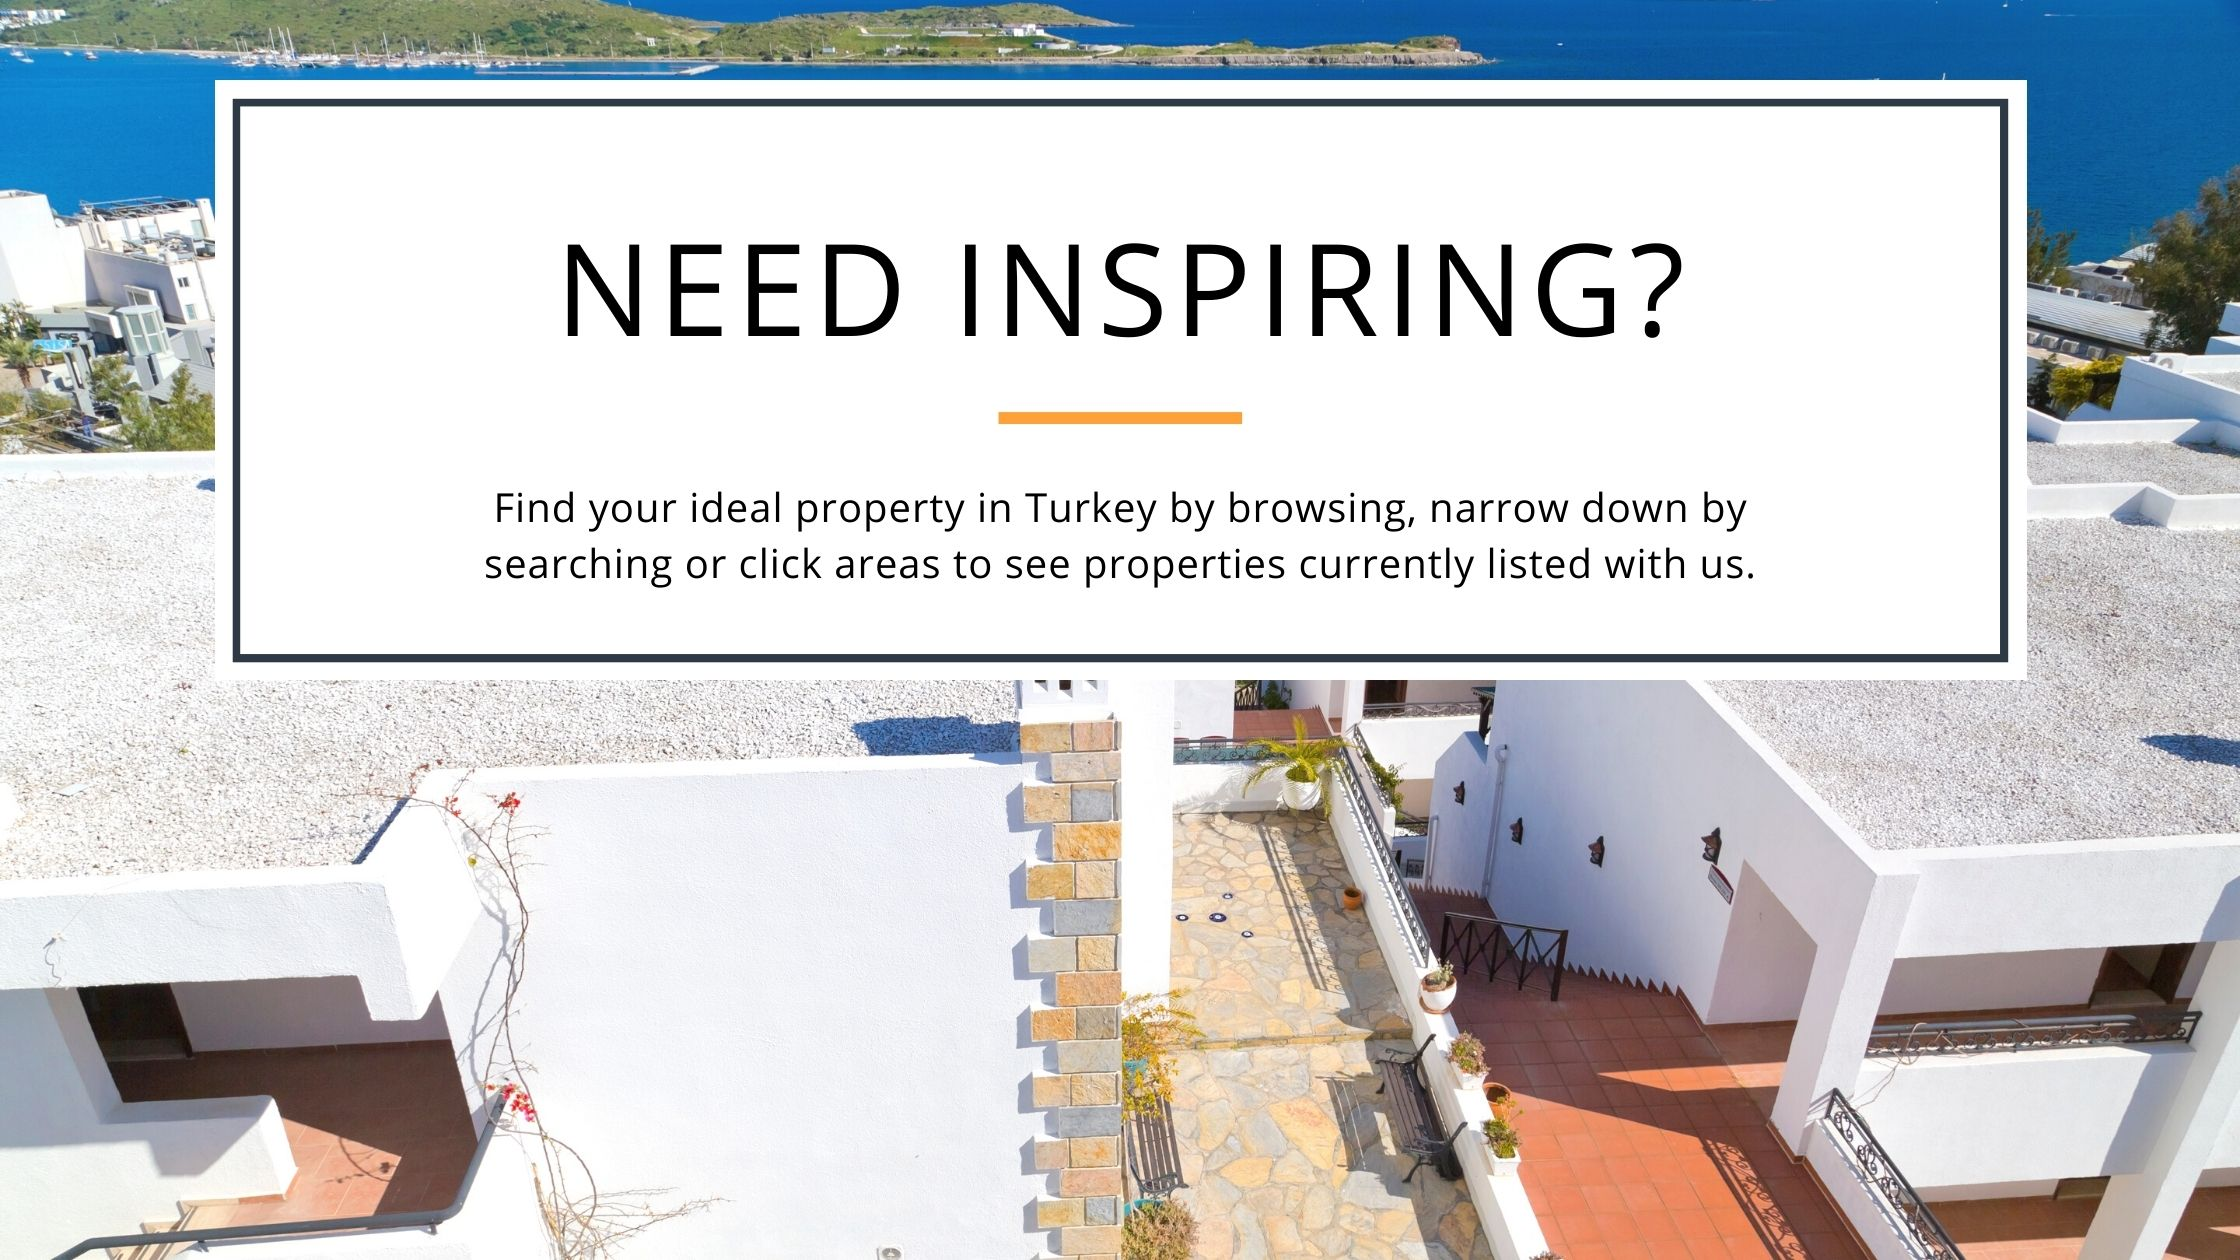 Turkish estate agent. All property for sale banner. Picture shows Gumbet shoreline. Text reads: Need Inspiring? Find your ideal property in Turkey by browsing. Narrow down by search or click areas to see properties listed with us.